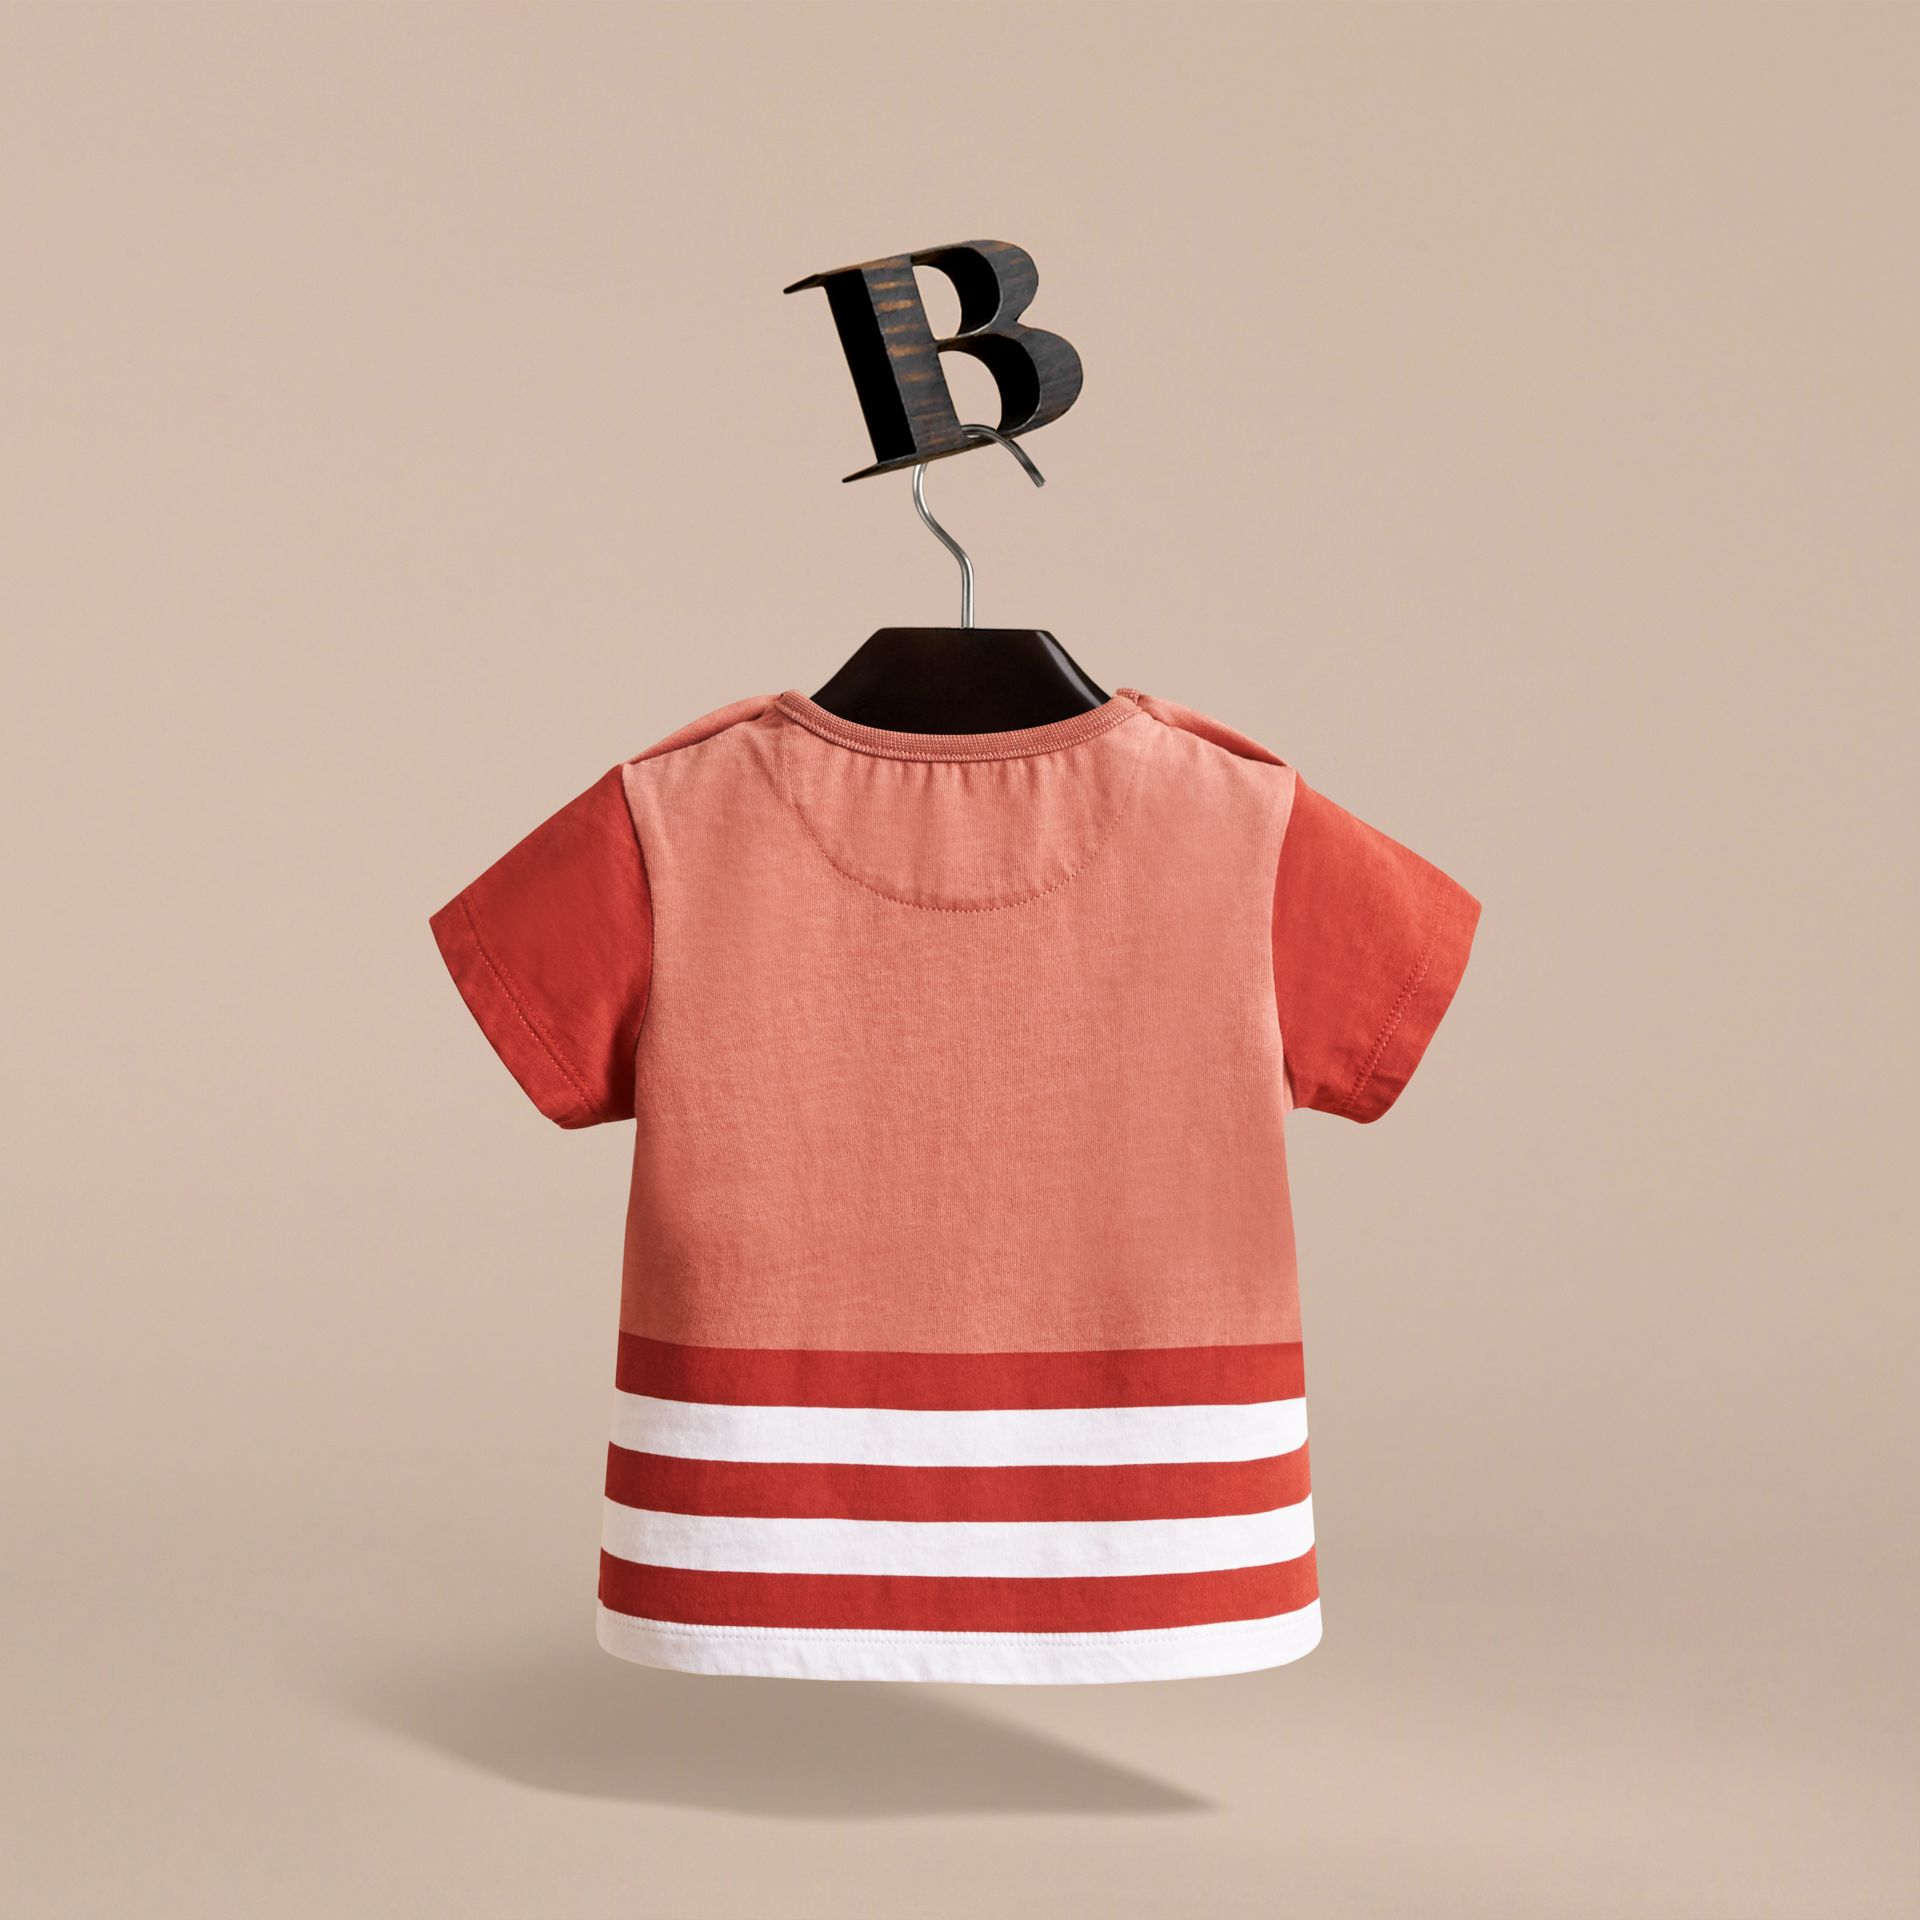 T-shirt en coton avec imprimé barbu (Cannelle Pâle) | Burberry - photo de la galerie 4